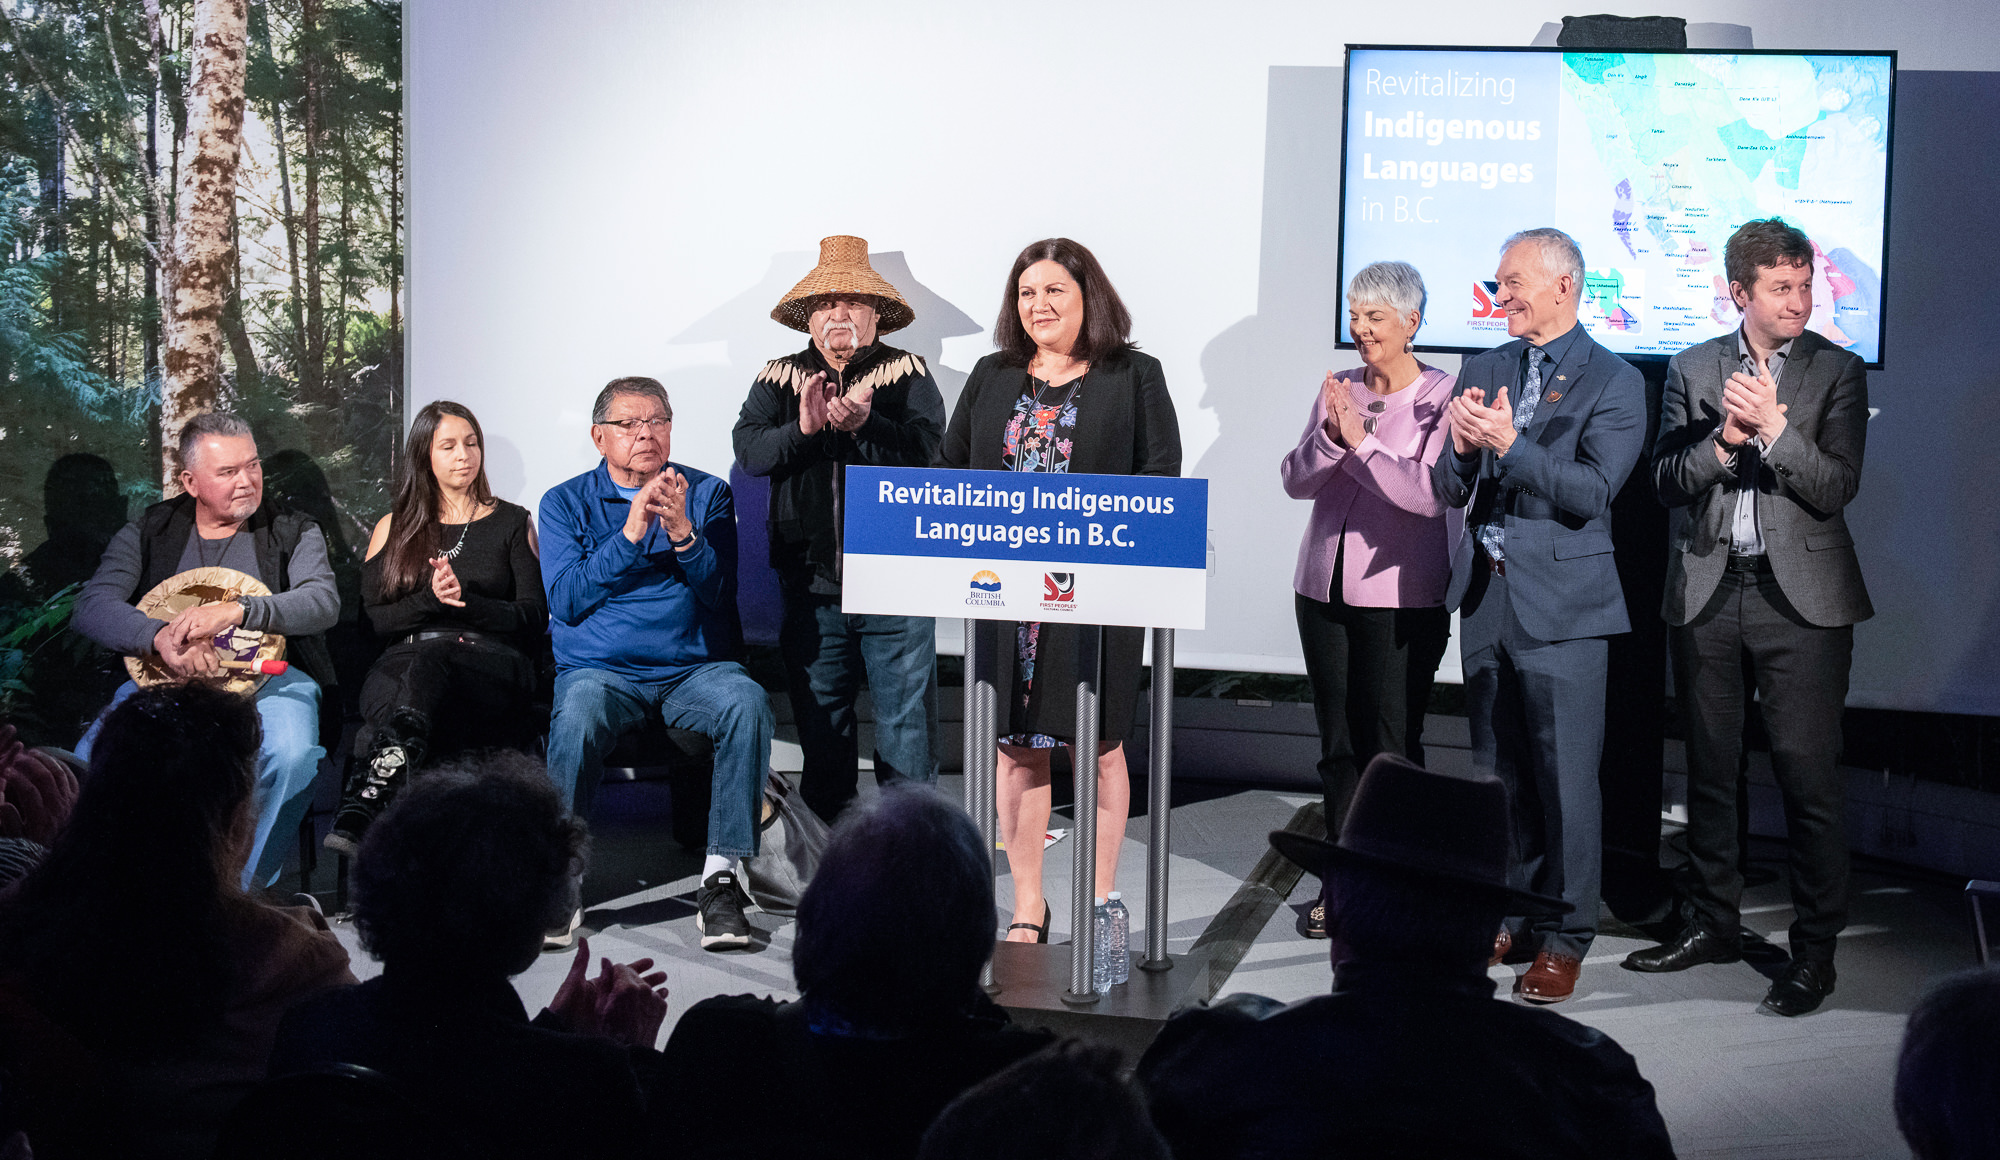 Government announcement of $50 million for Indigenous language revitalization in B.C.